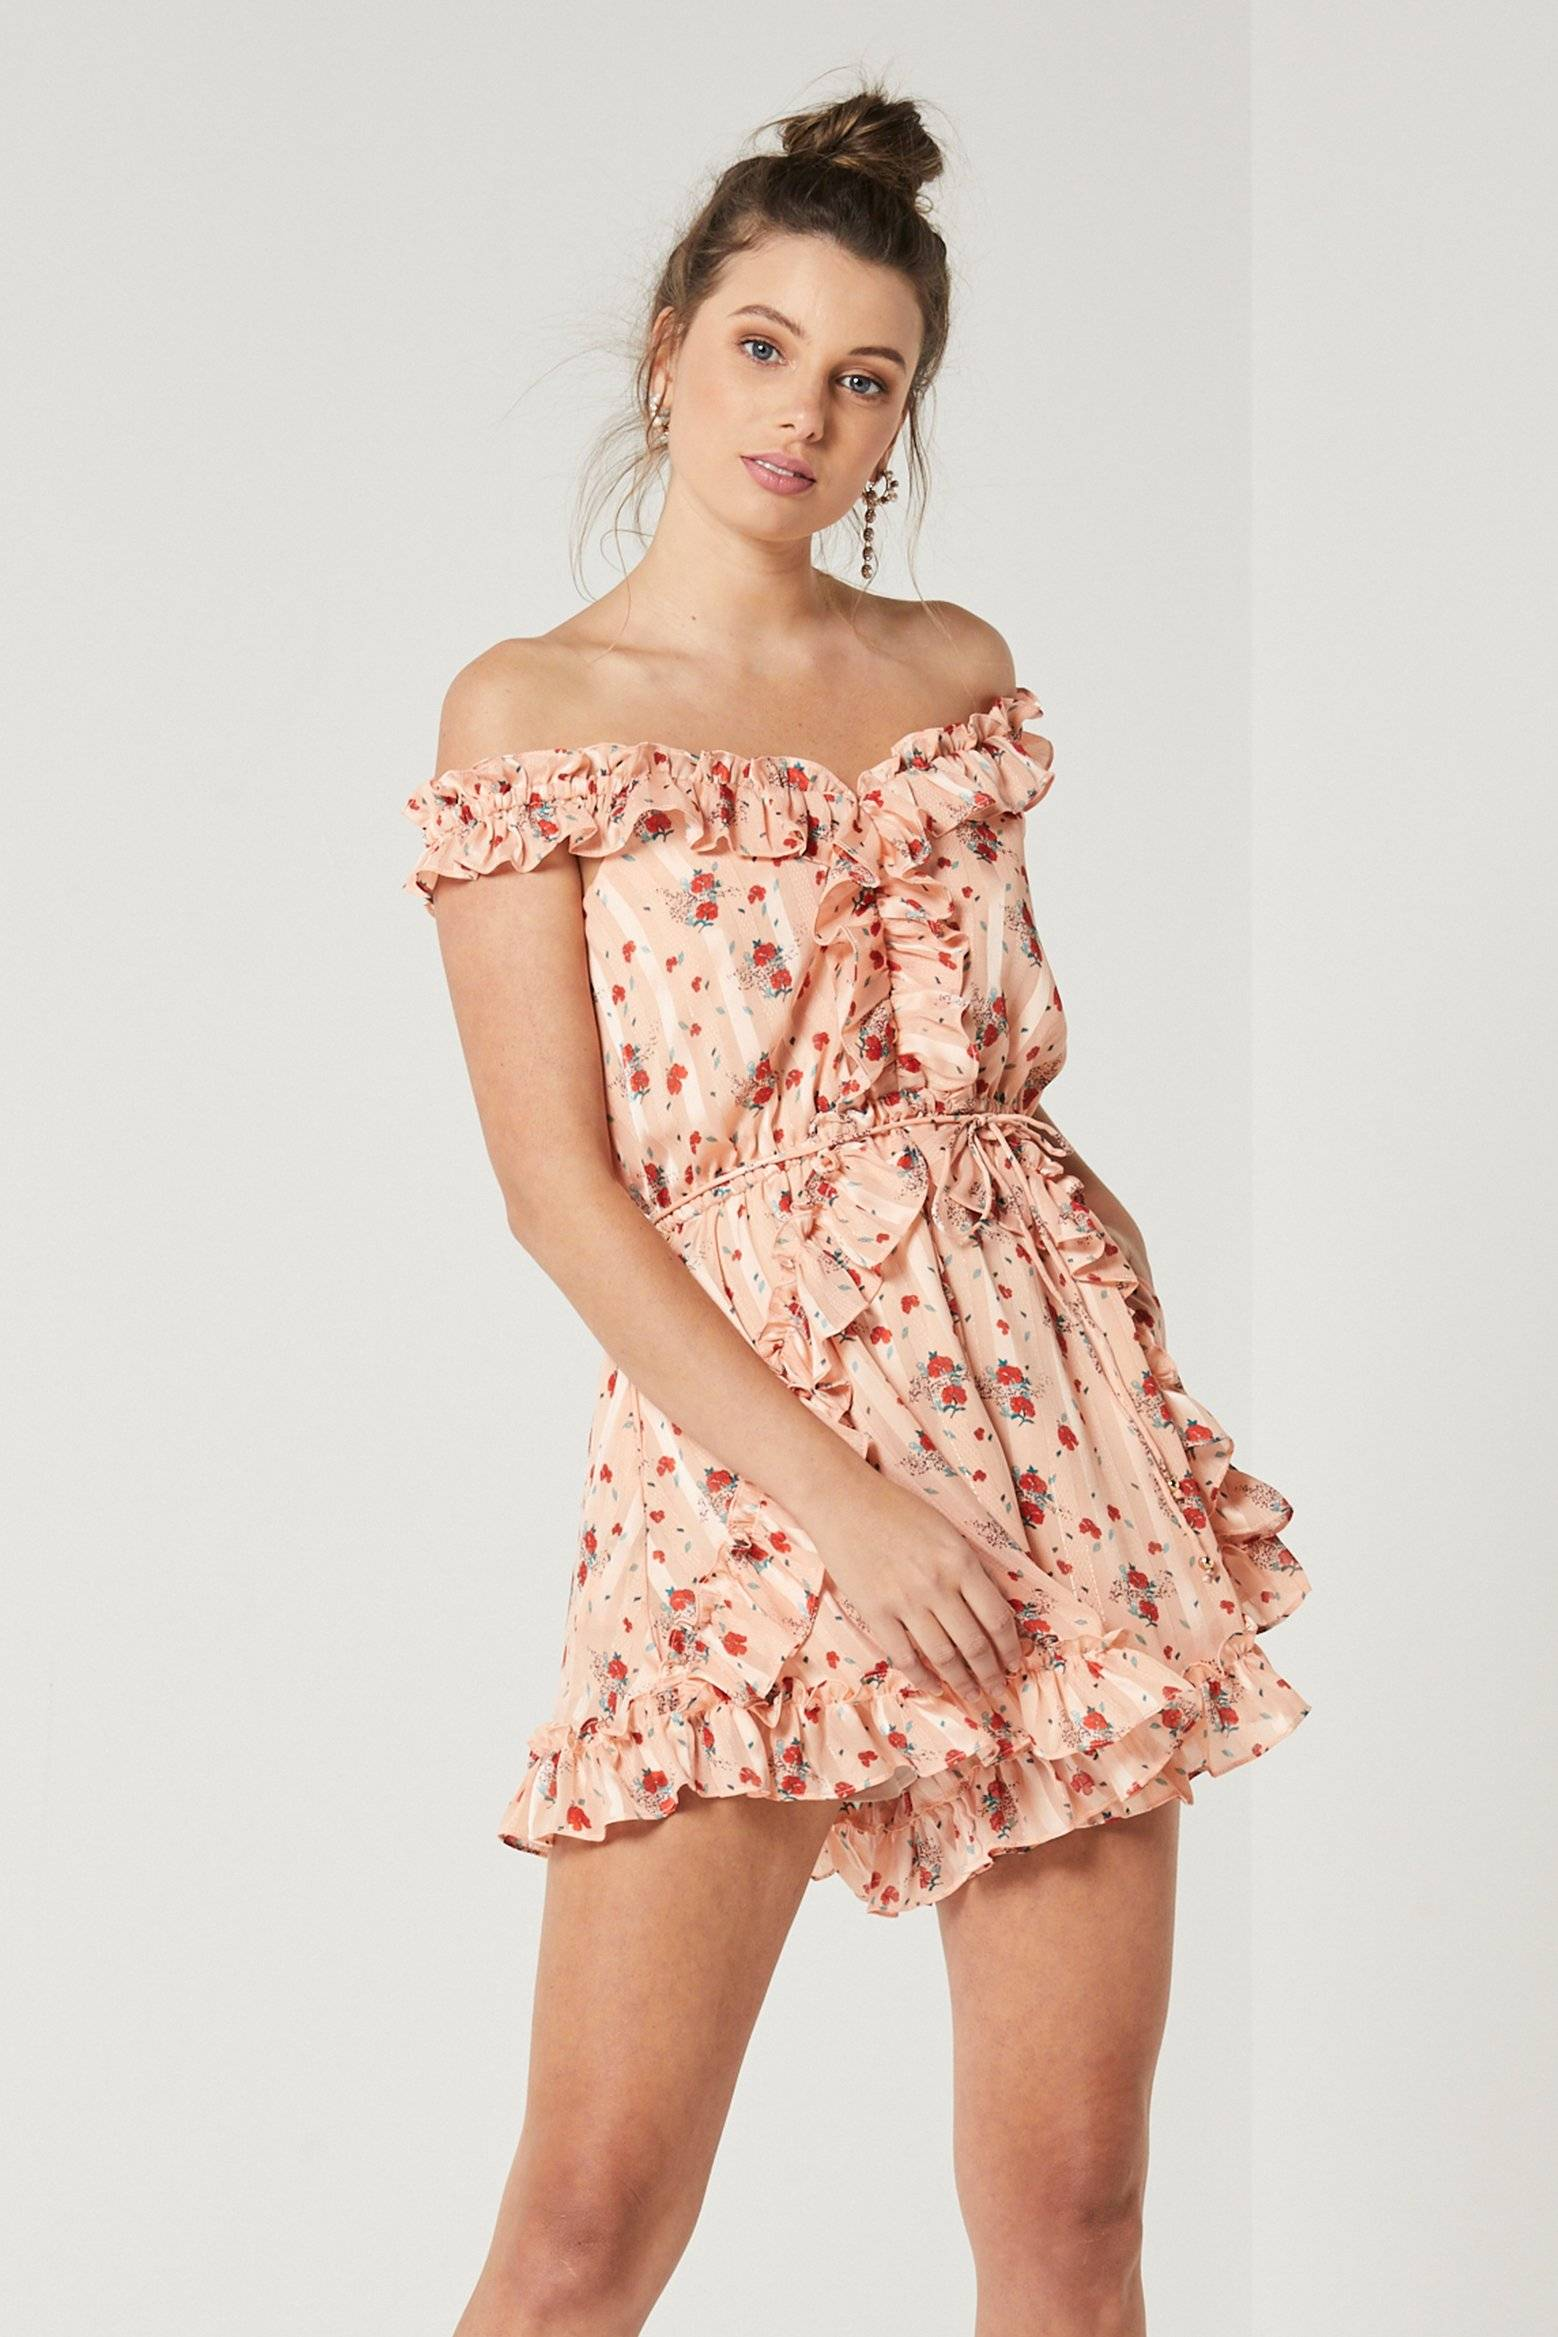 Finders Keepers Limoncello Dress - Yellow Floral